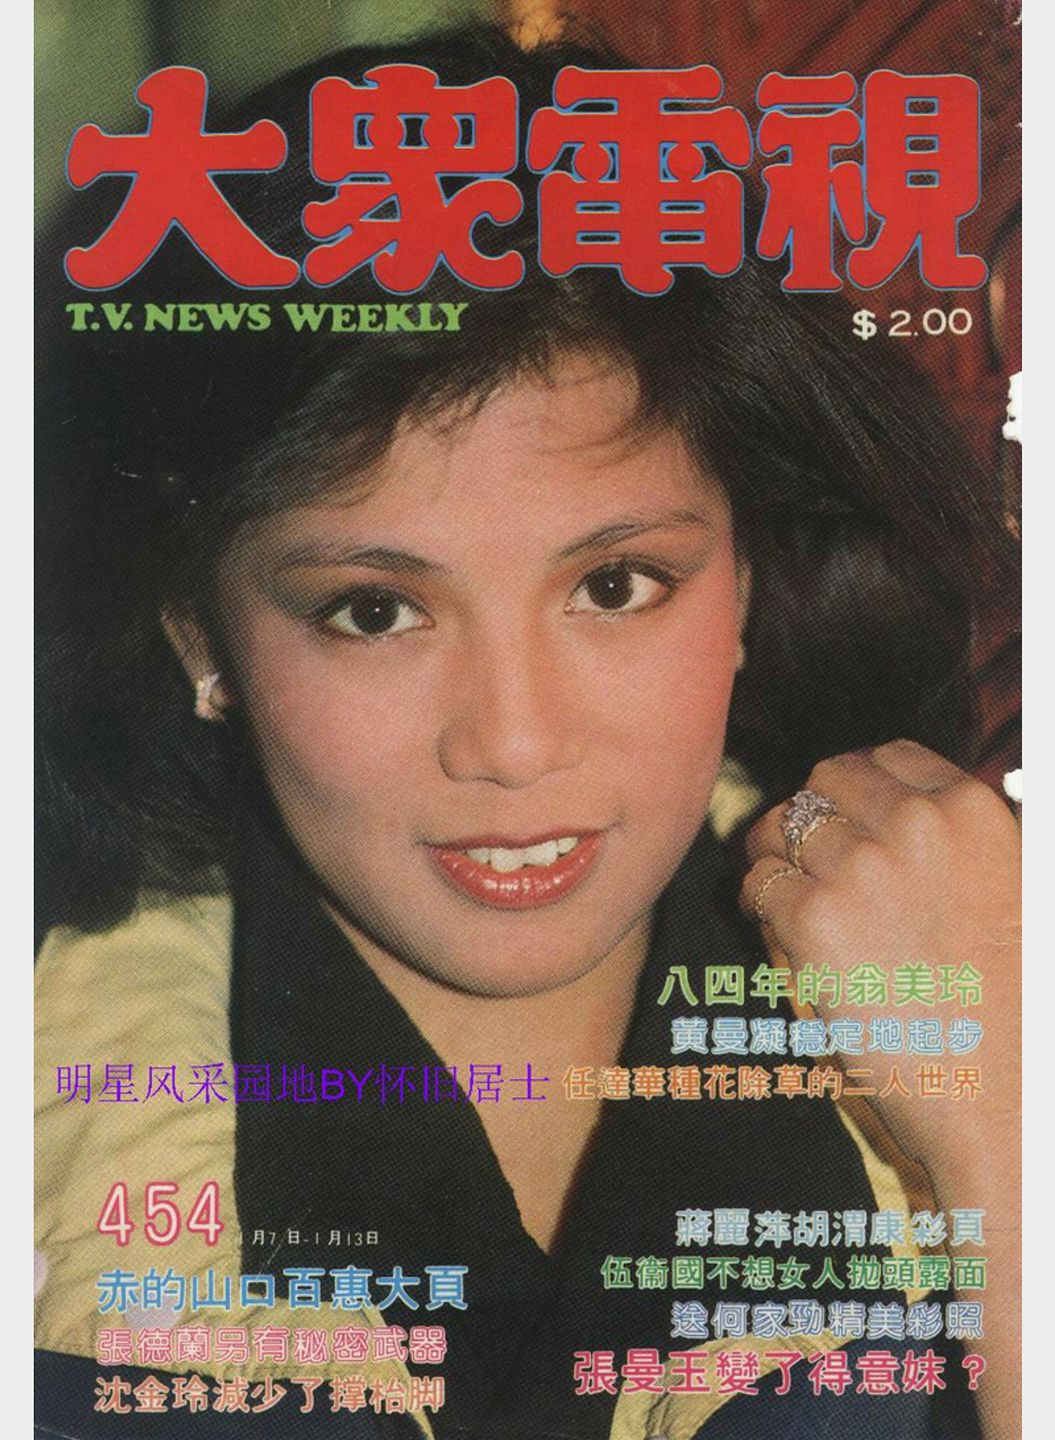 19840701 TV news weekly